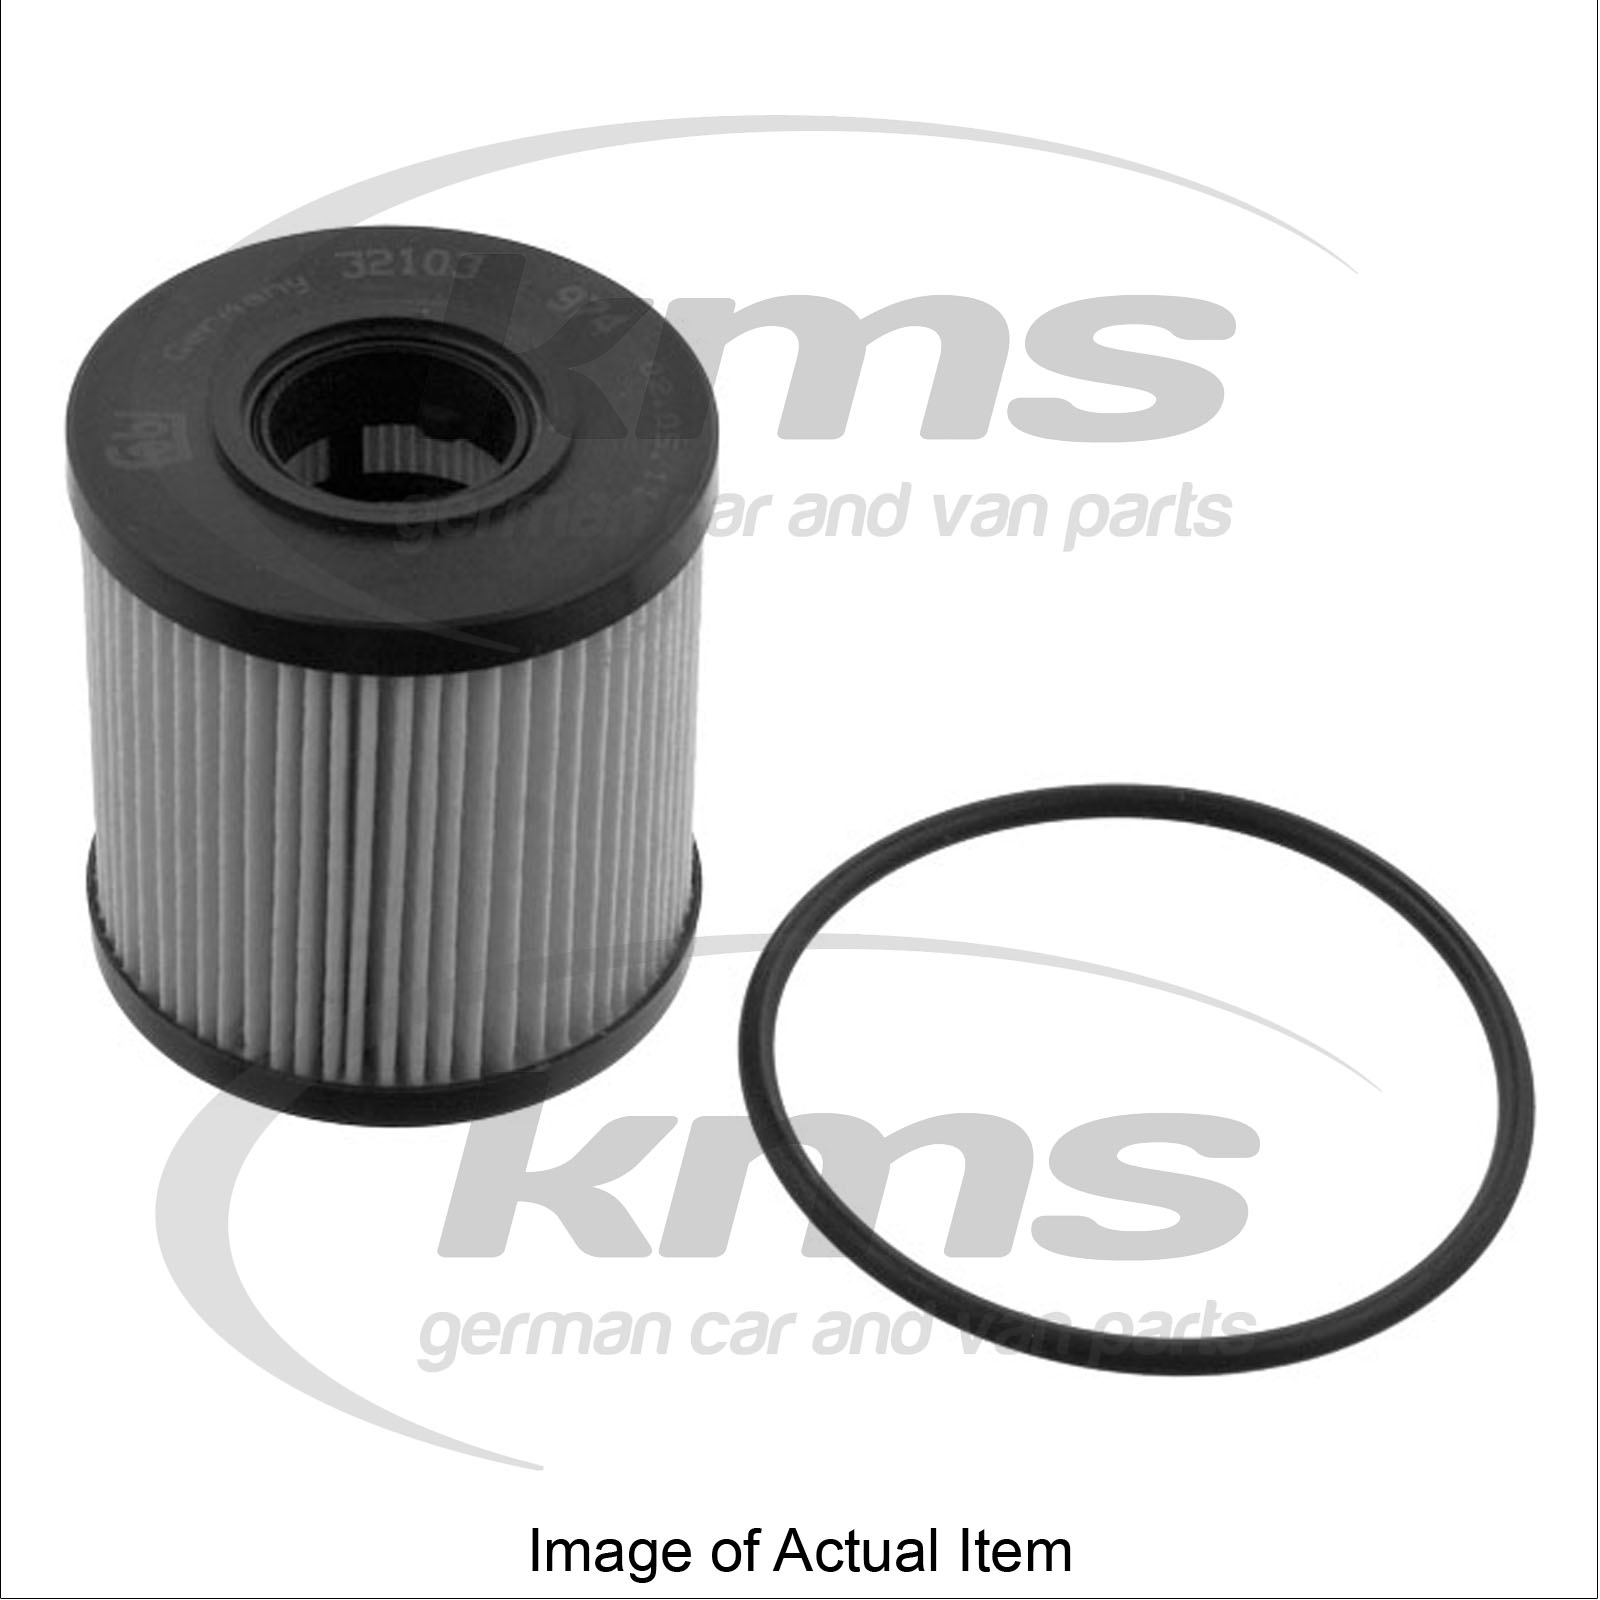 2006 Mini Cooper Engine Diagram Oil Filter Wiring For Free Additionally In Addition Likewise John Works Tuningkit 00163313 35 As Well